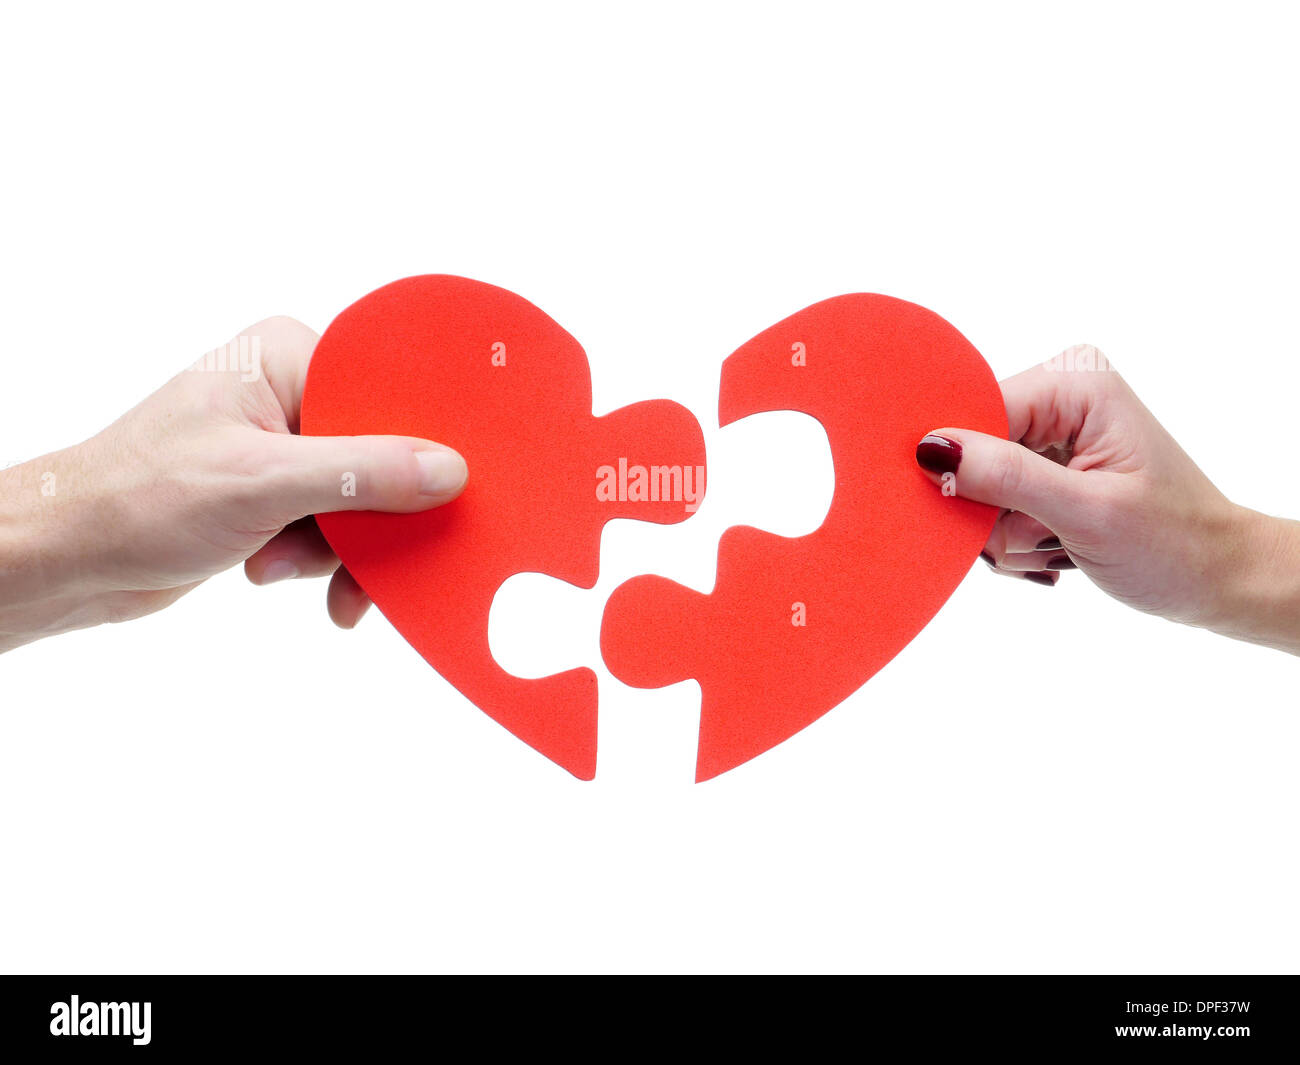 Male and female hand matching red jigsaw heart halves over white background - Stock Image